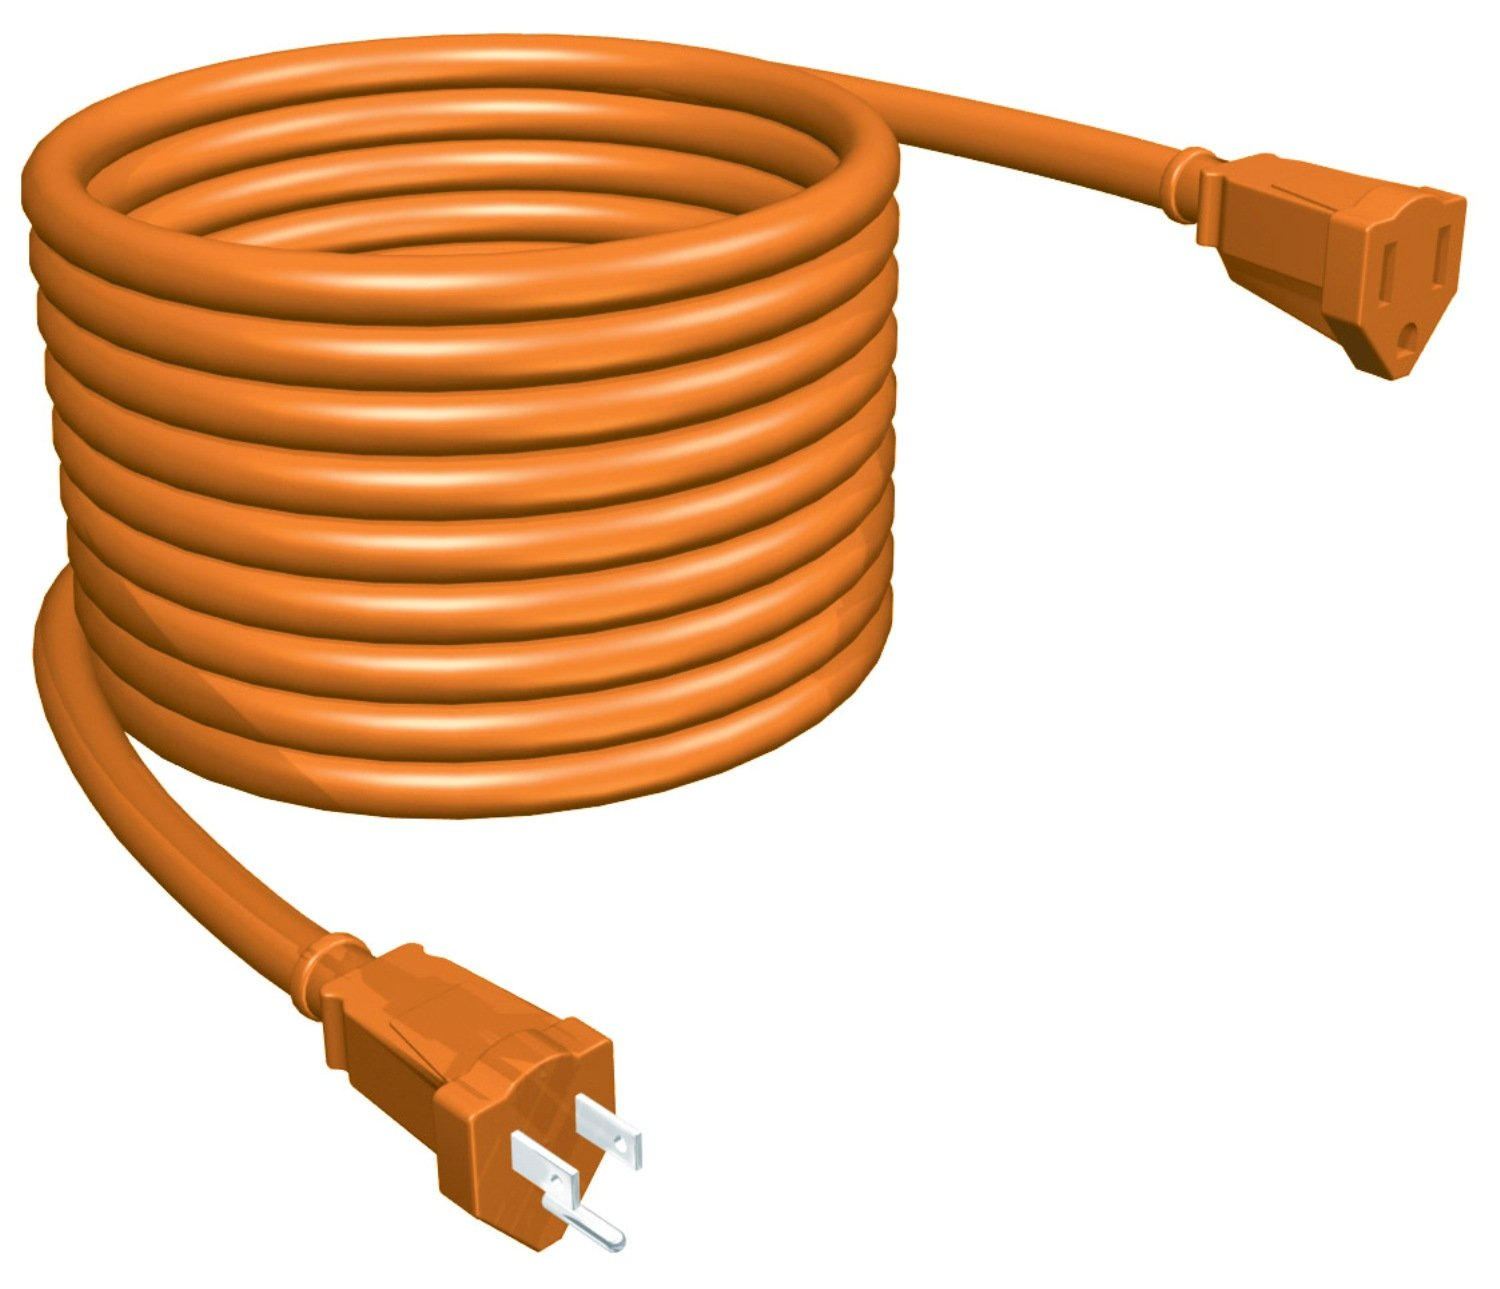 50-Feet Orange STANLEY 36504 PowerCord Grounded 14-Gauge Outdoor Extension Cord